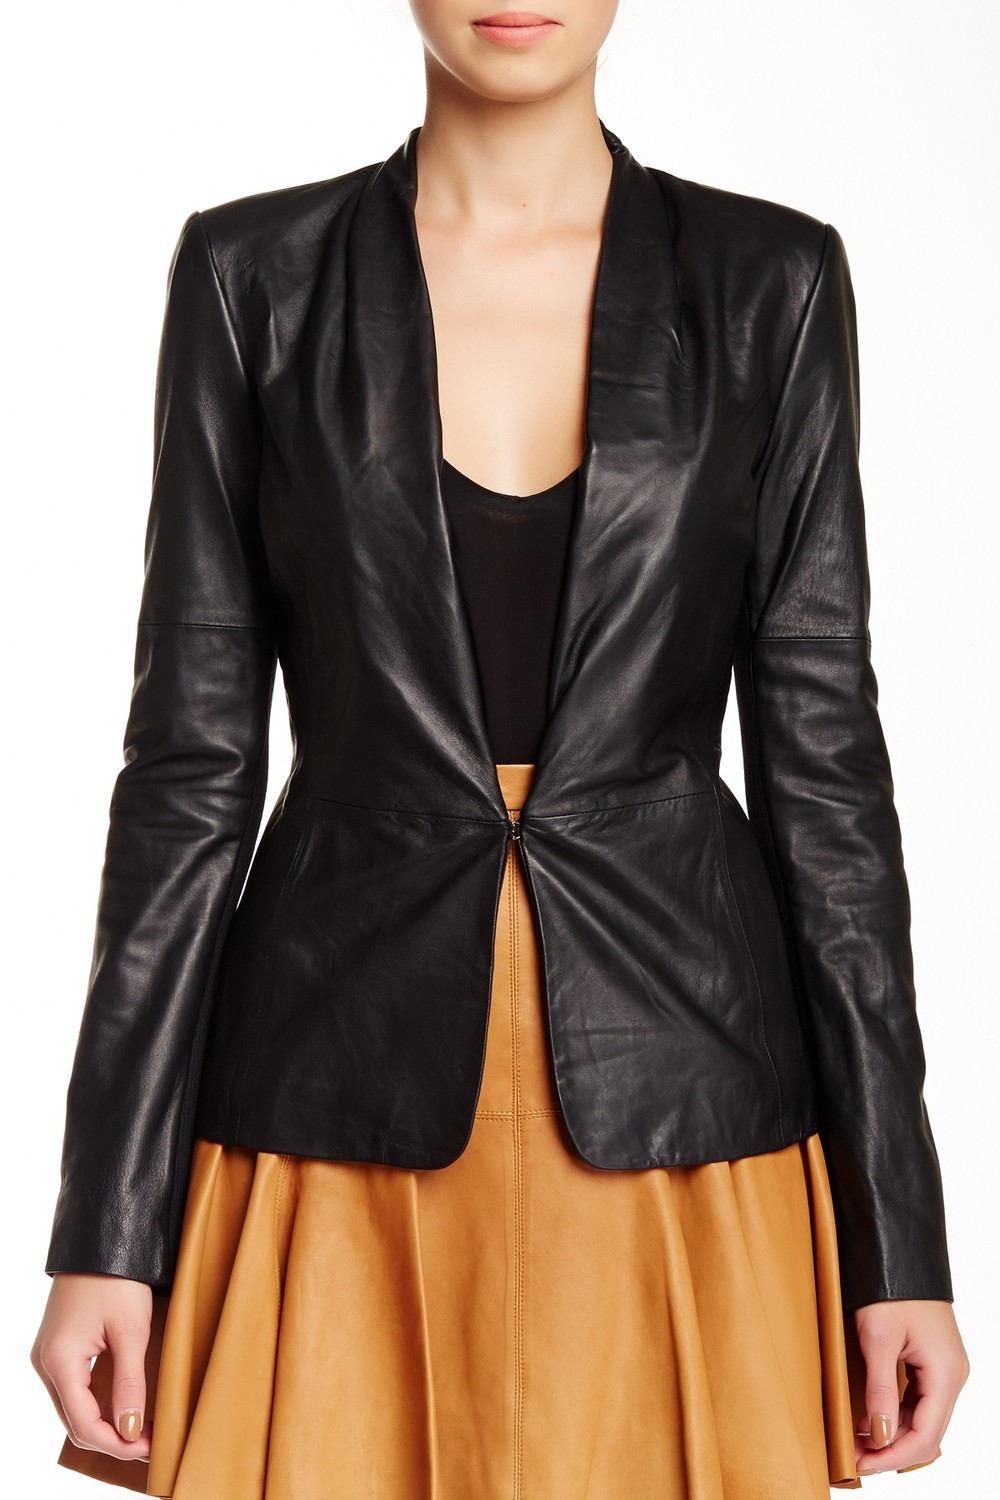 Halston Heritage Ribbed Back Leather Jacket. Nordstrom Rack. Was: $995 Now: $299.